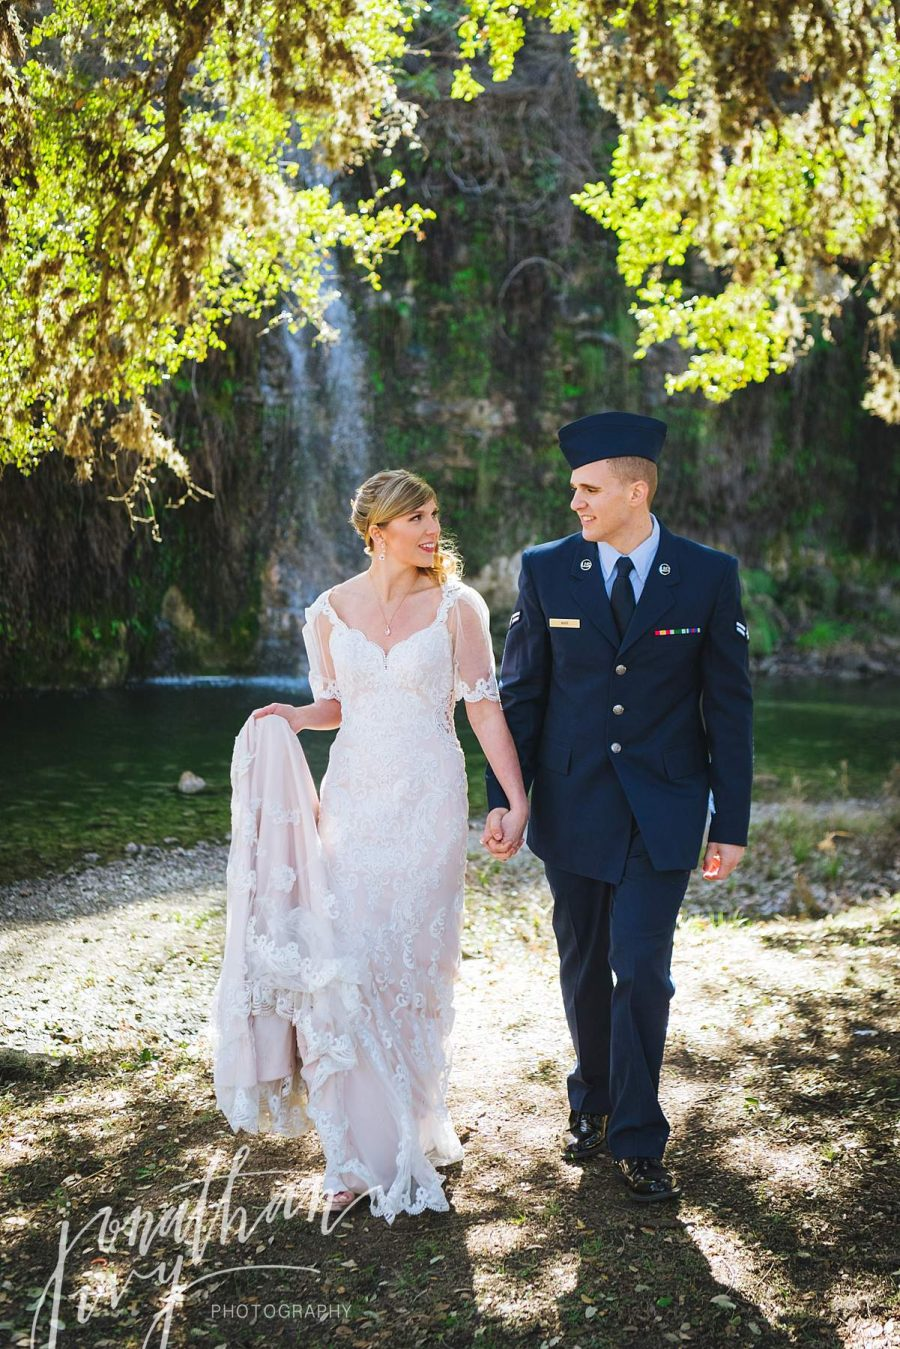 Military Elopement Wedding at Canyon Springs Golf Club